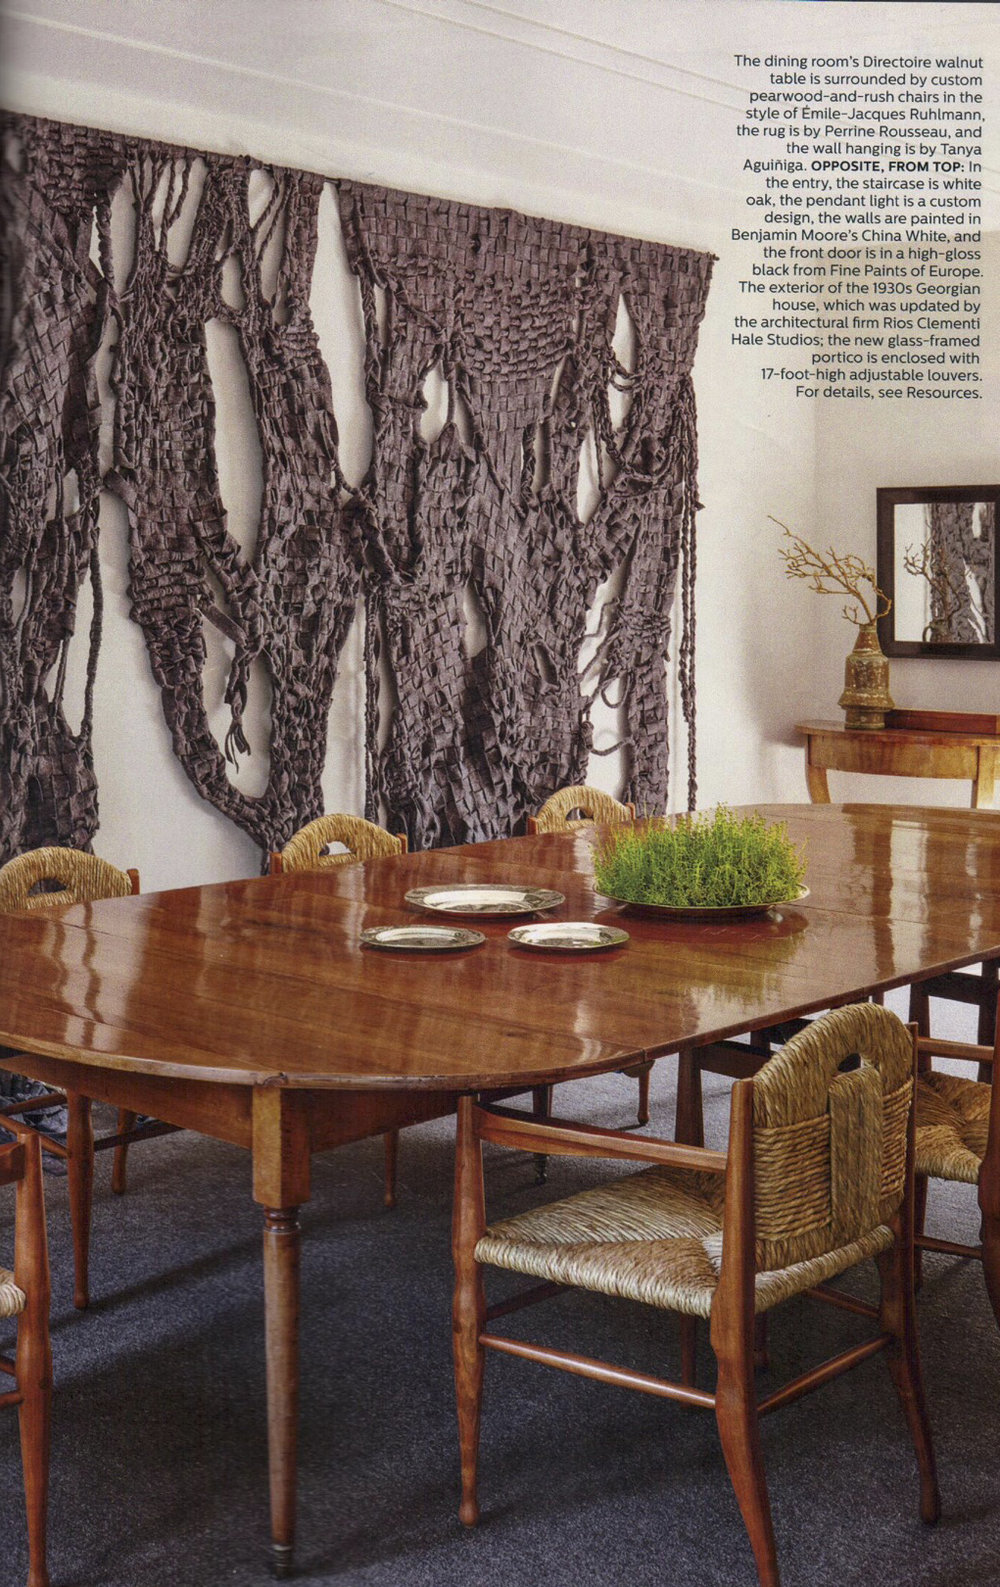 Clements Elle Decor copy 4.jpg